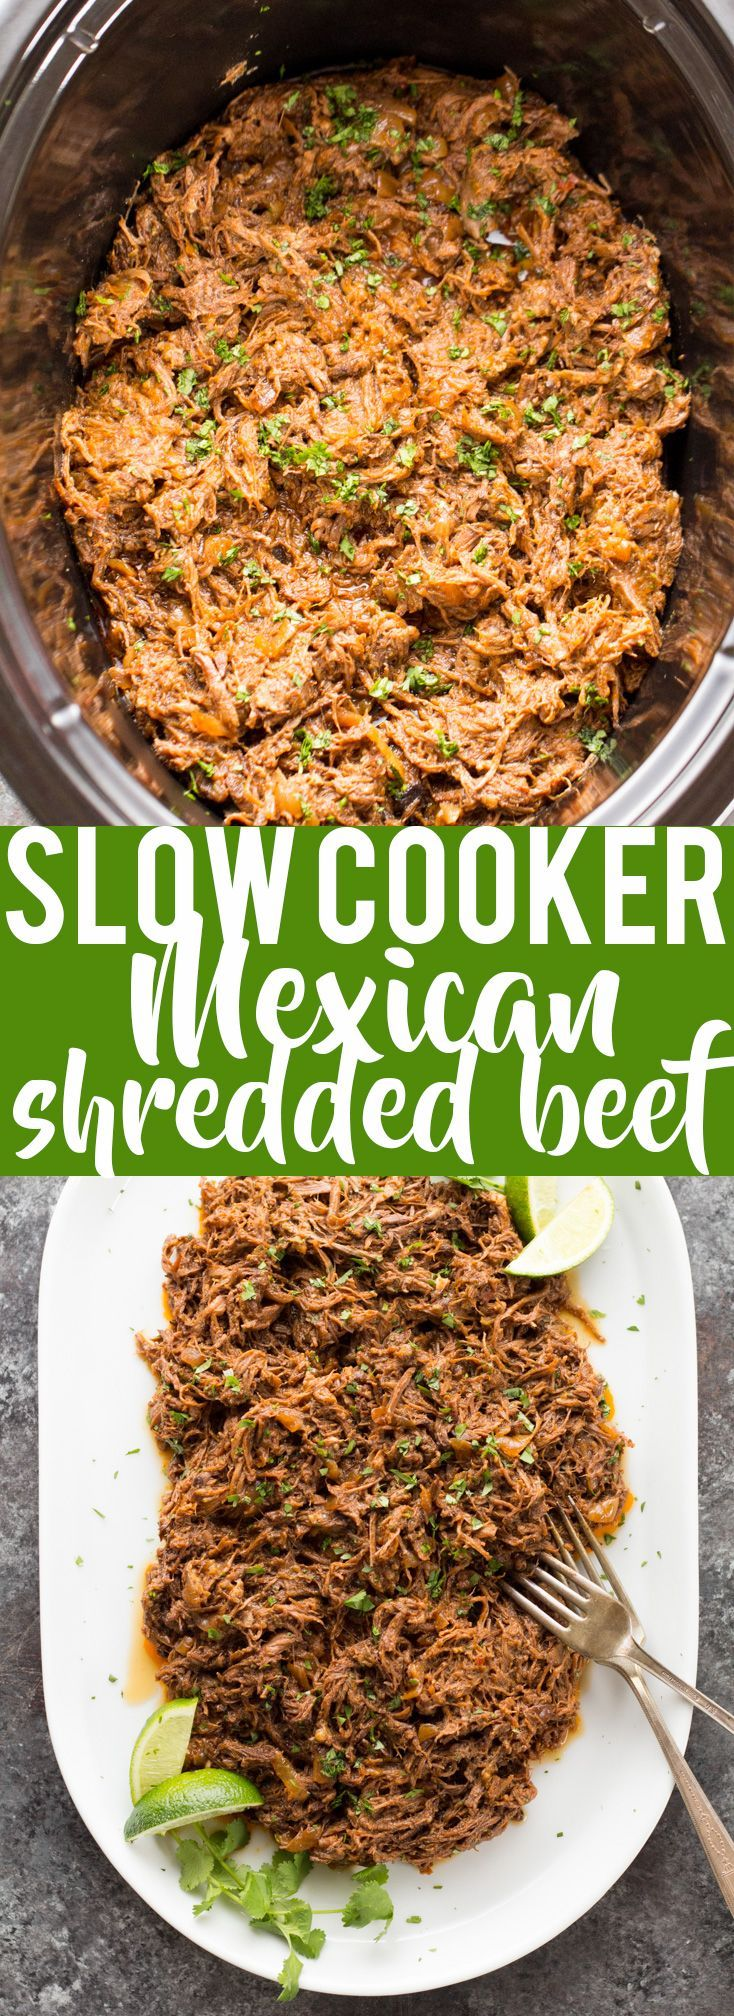 This all purpose Slow Cooker Mexican Shredded Beef is great for tacos, burritos and more! Quick and easy prep work and the crock pot does the rest.  crock pot recipe   Slow Cooker Recipe   Crock Pot beef   Slow Cooker Taco   Crock Pot Tacos